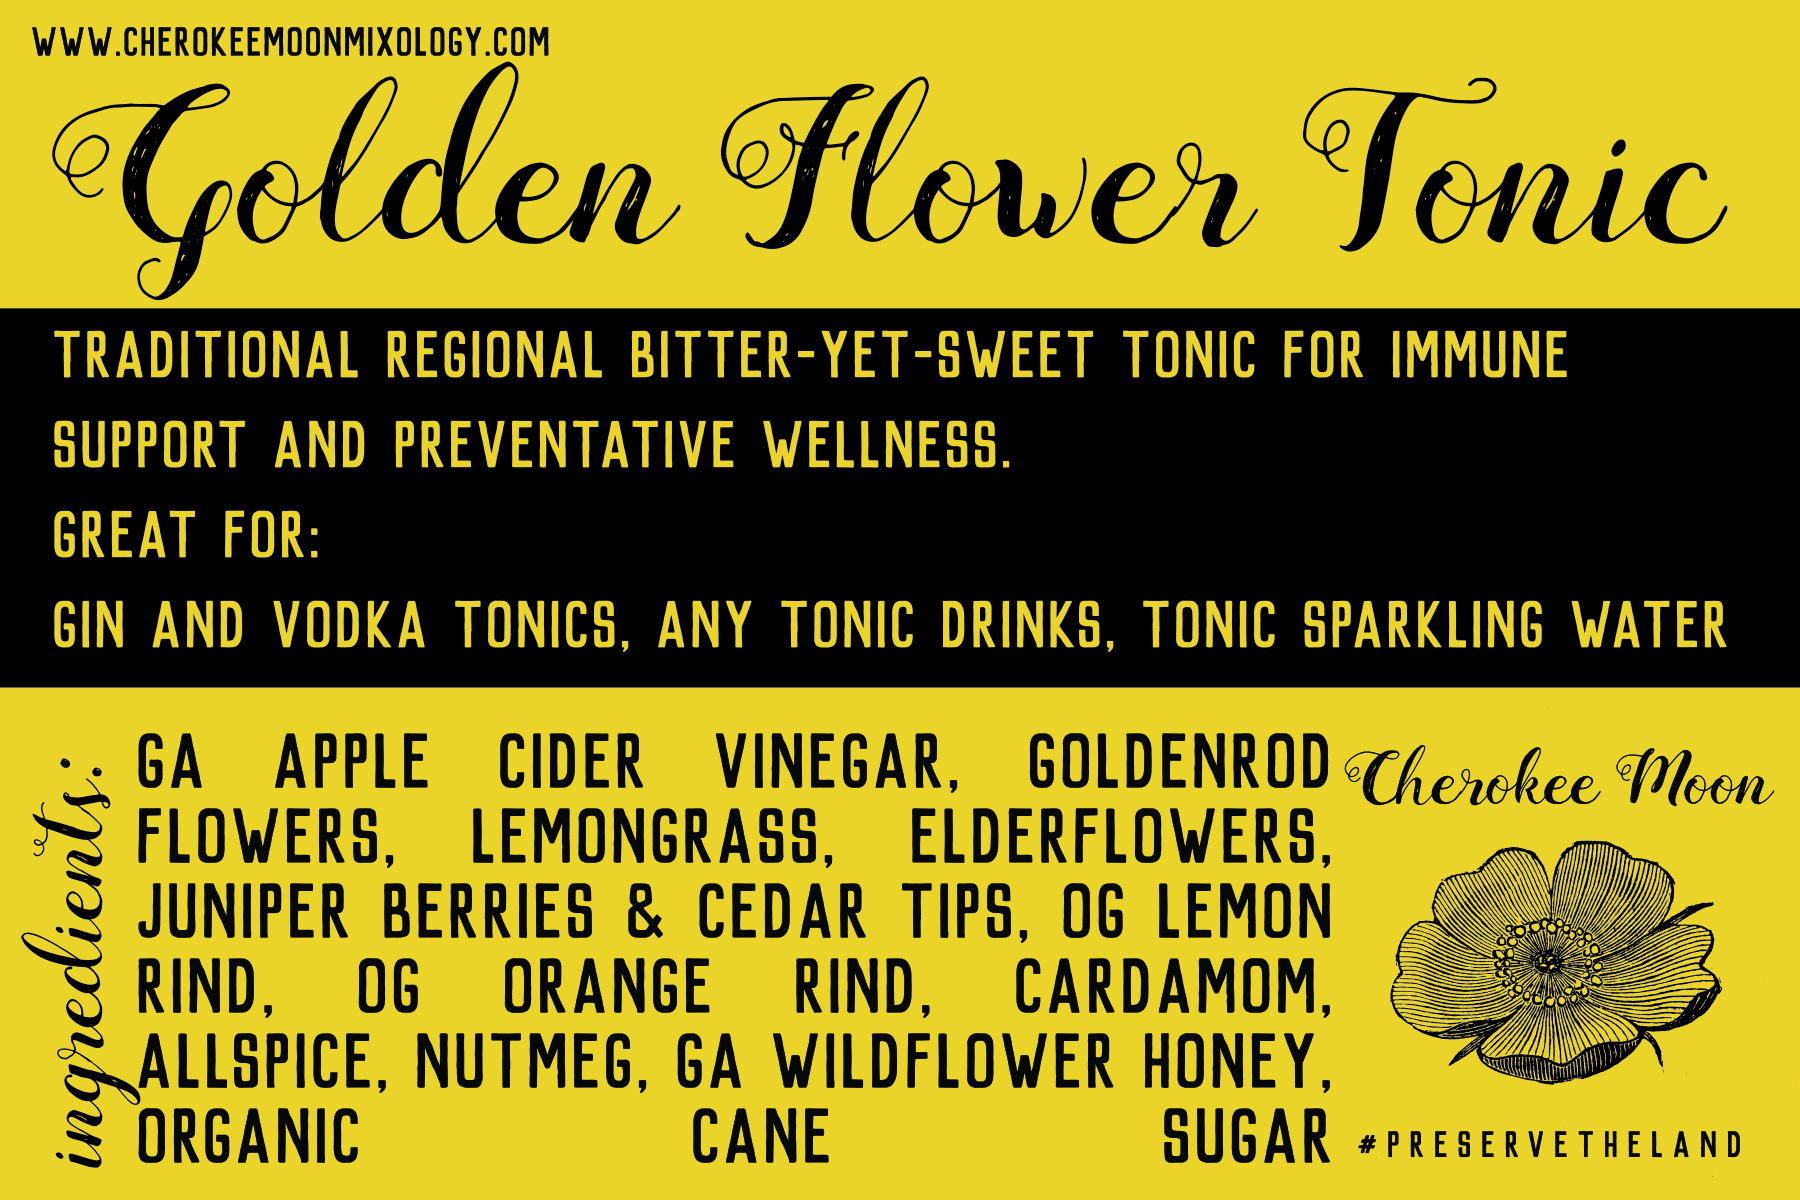 IC- GOLDEN TONIC.jpg